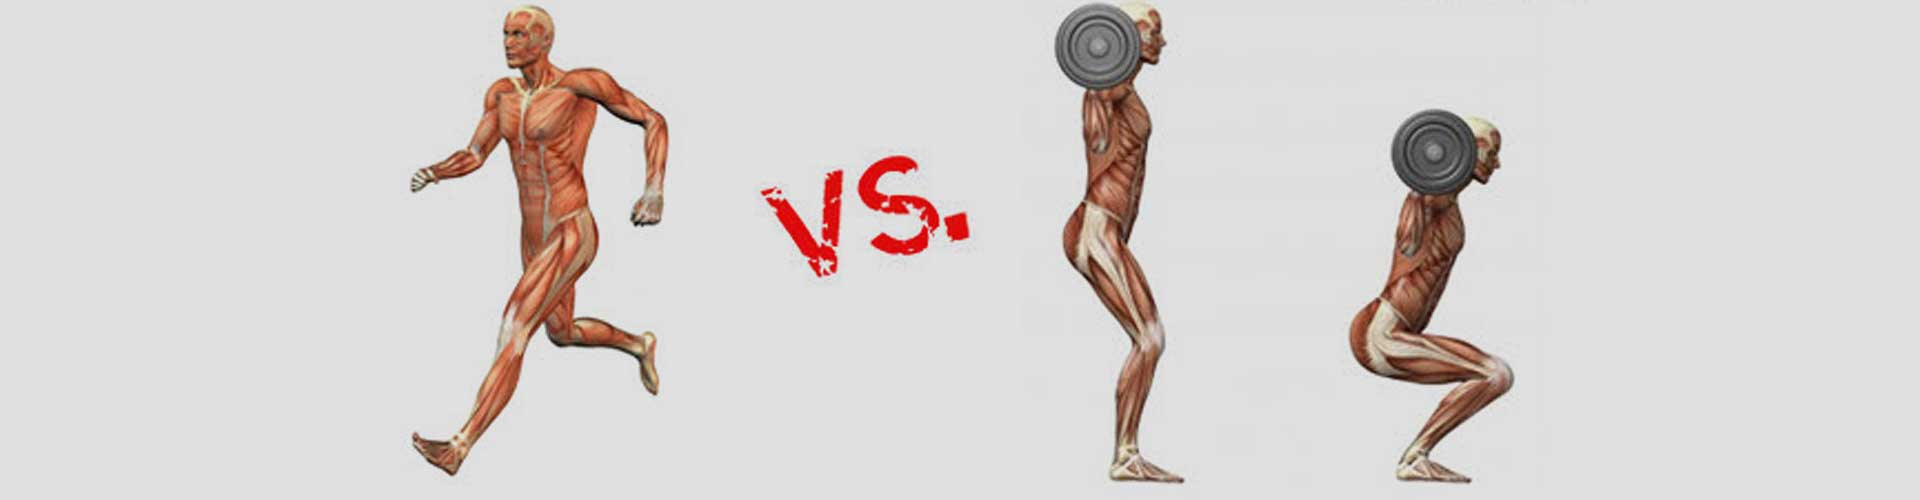 cardio vs. weight training: which is better for weight loss?, Muscles